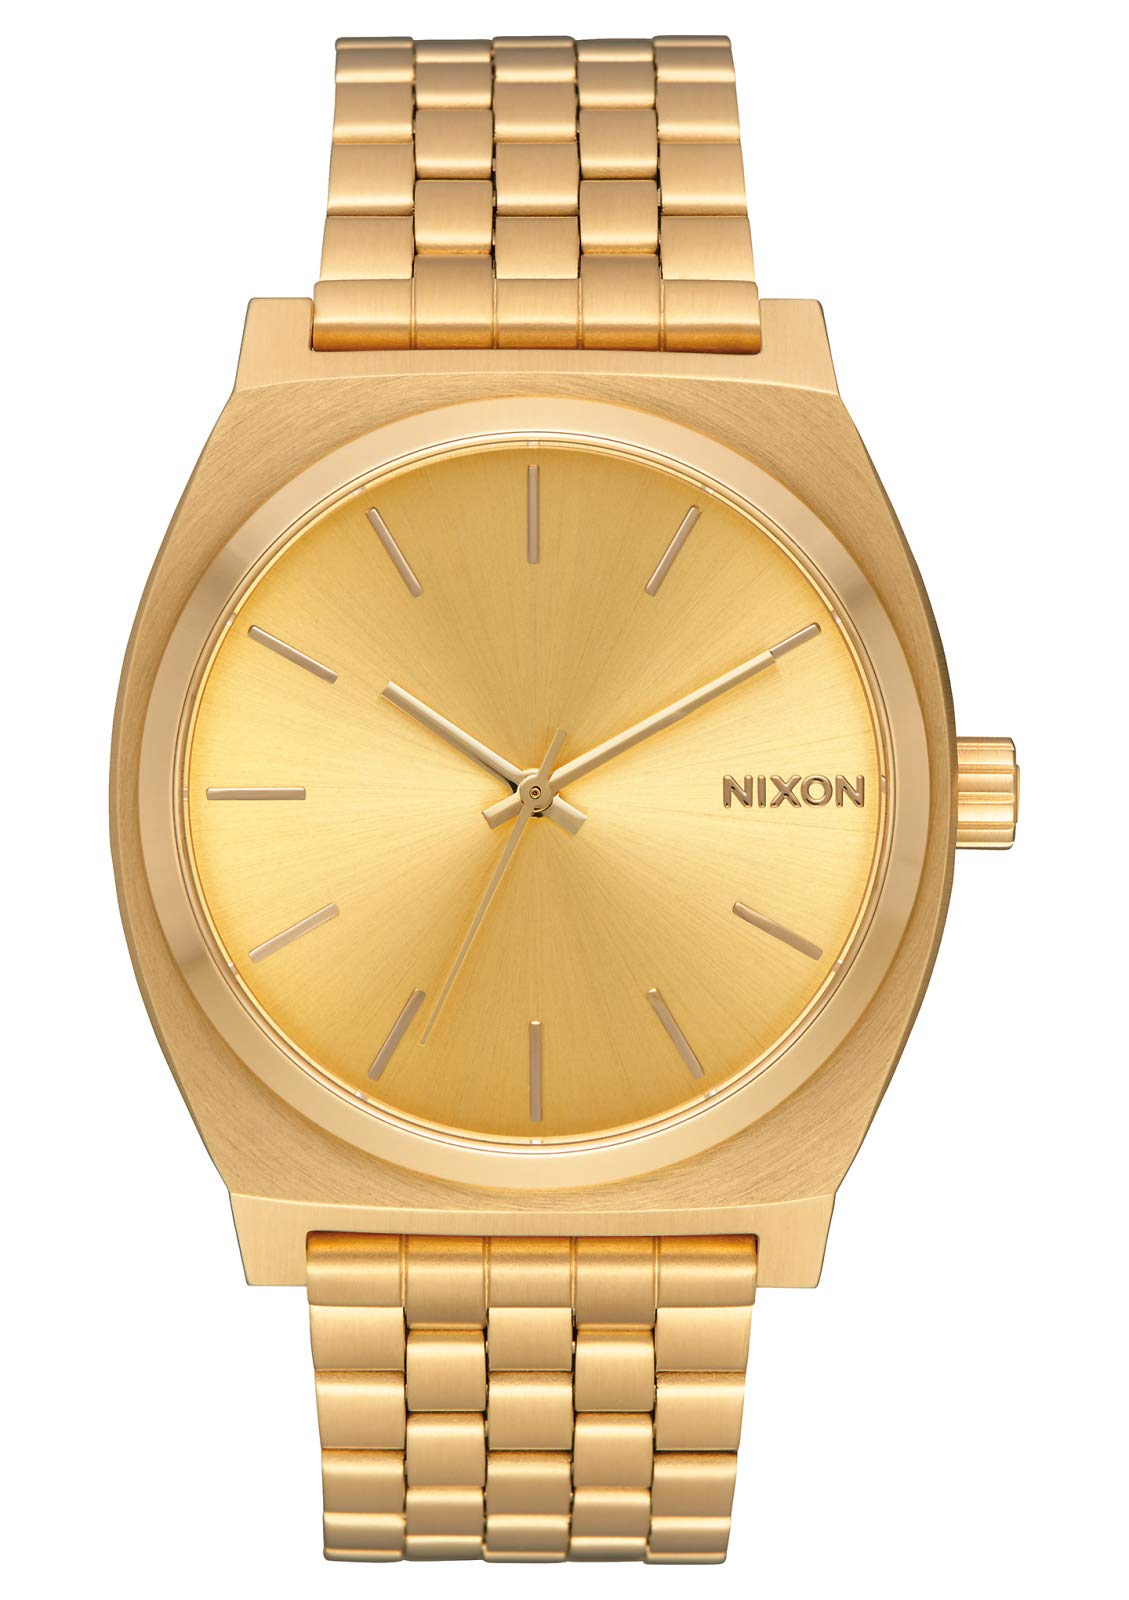 NIXON Time Teller A079 - All Gold/Gold - 134M Water Resistant Men's Analog Fashion Watch (37mm Watch Face, 19.5mm-18mm Stainless Steel Band) by NIXON